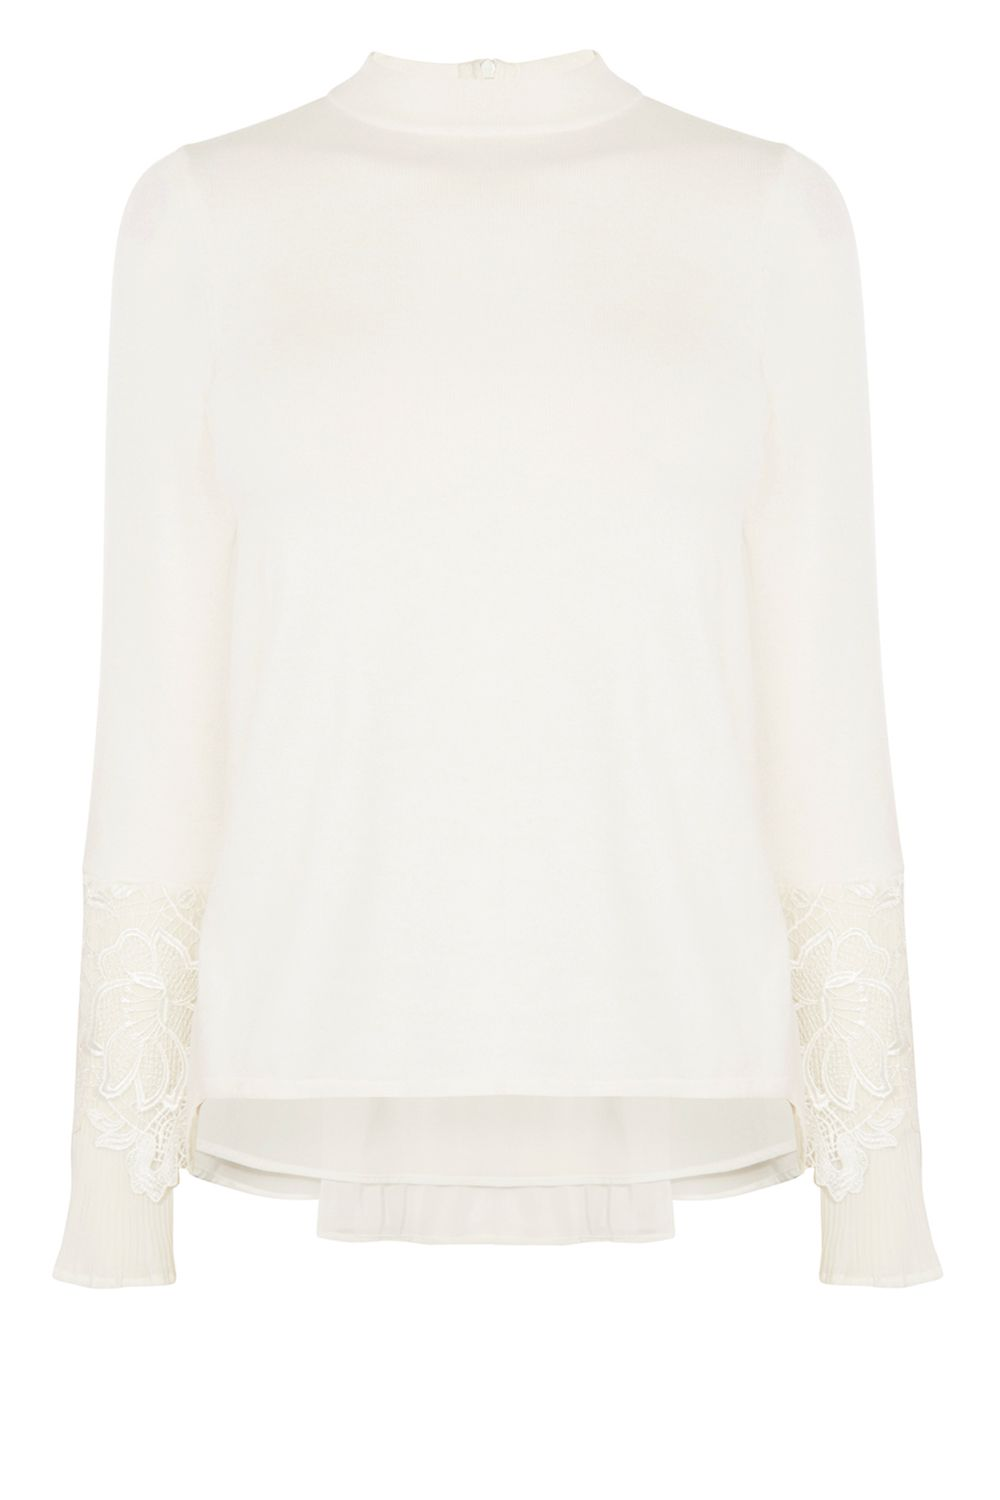 Coast Rose Pleat Lace Knit Top, White